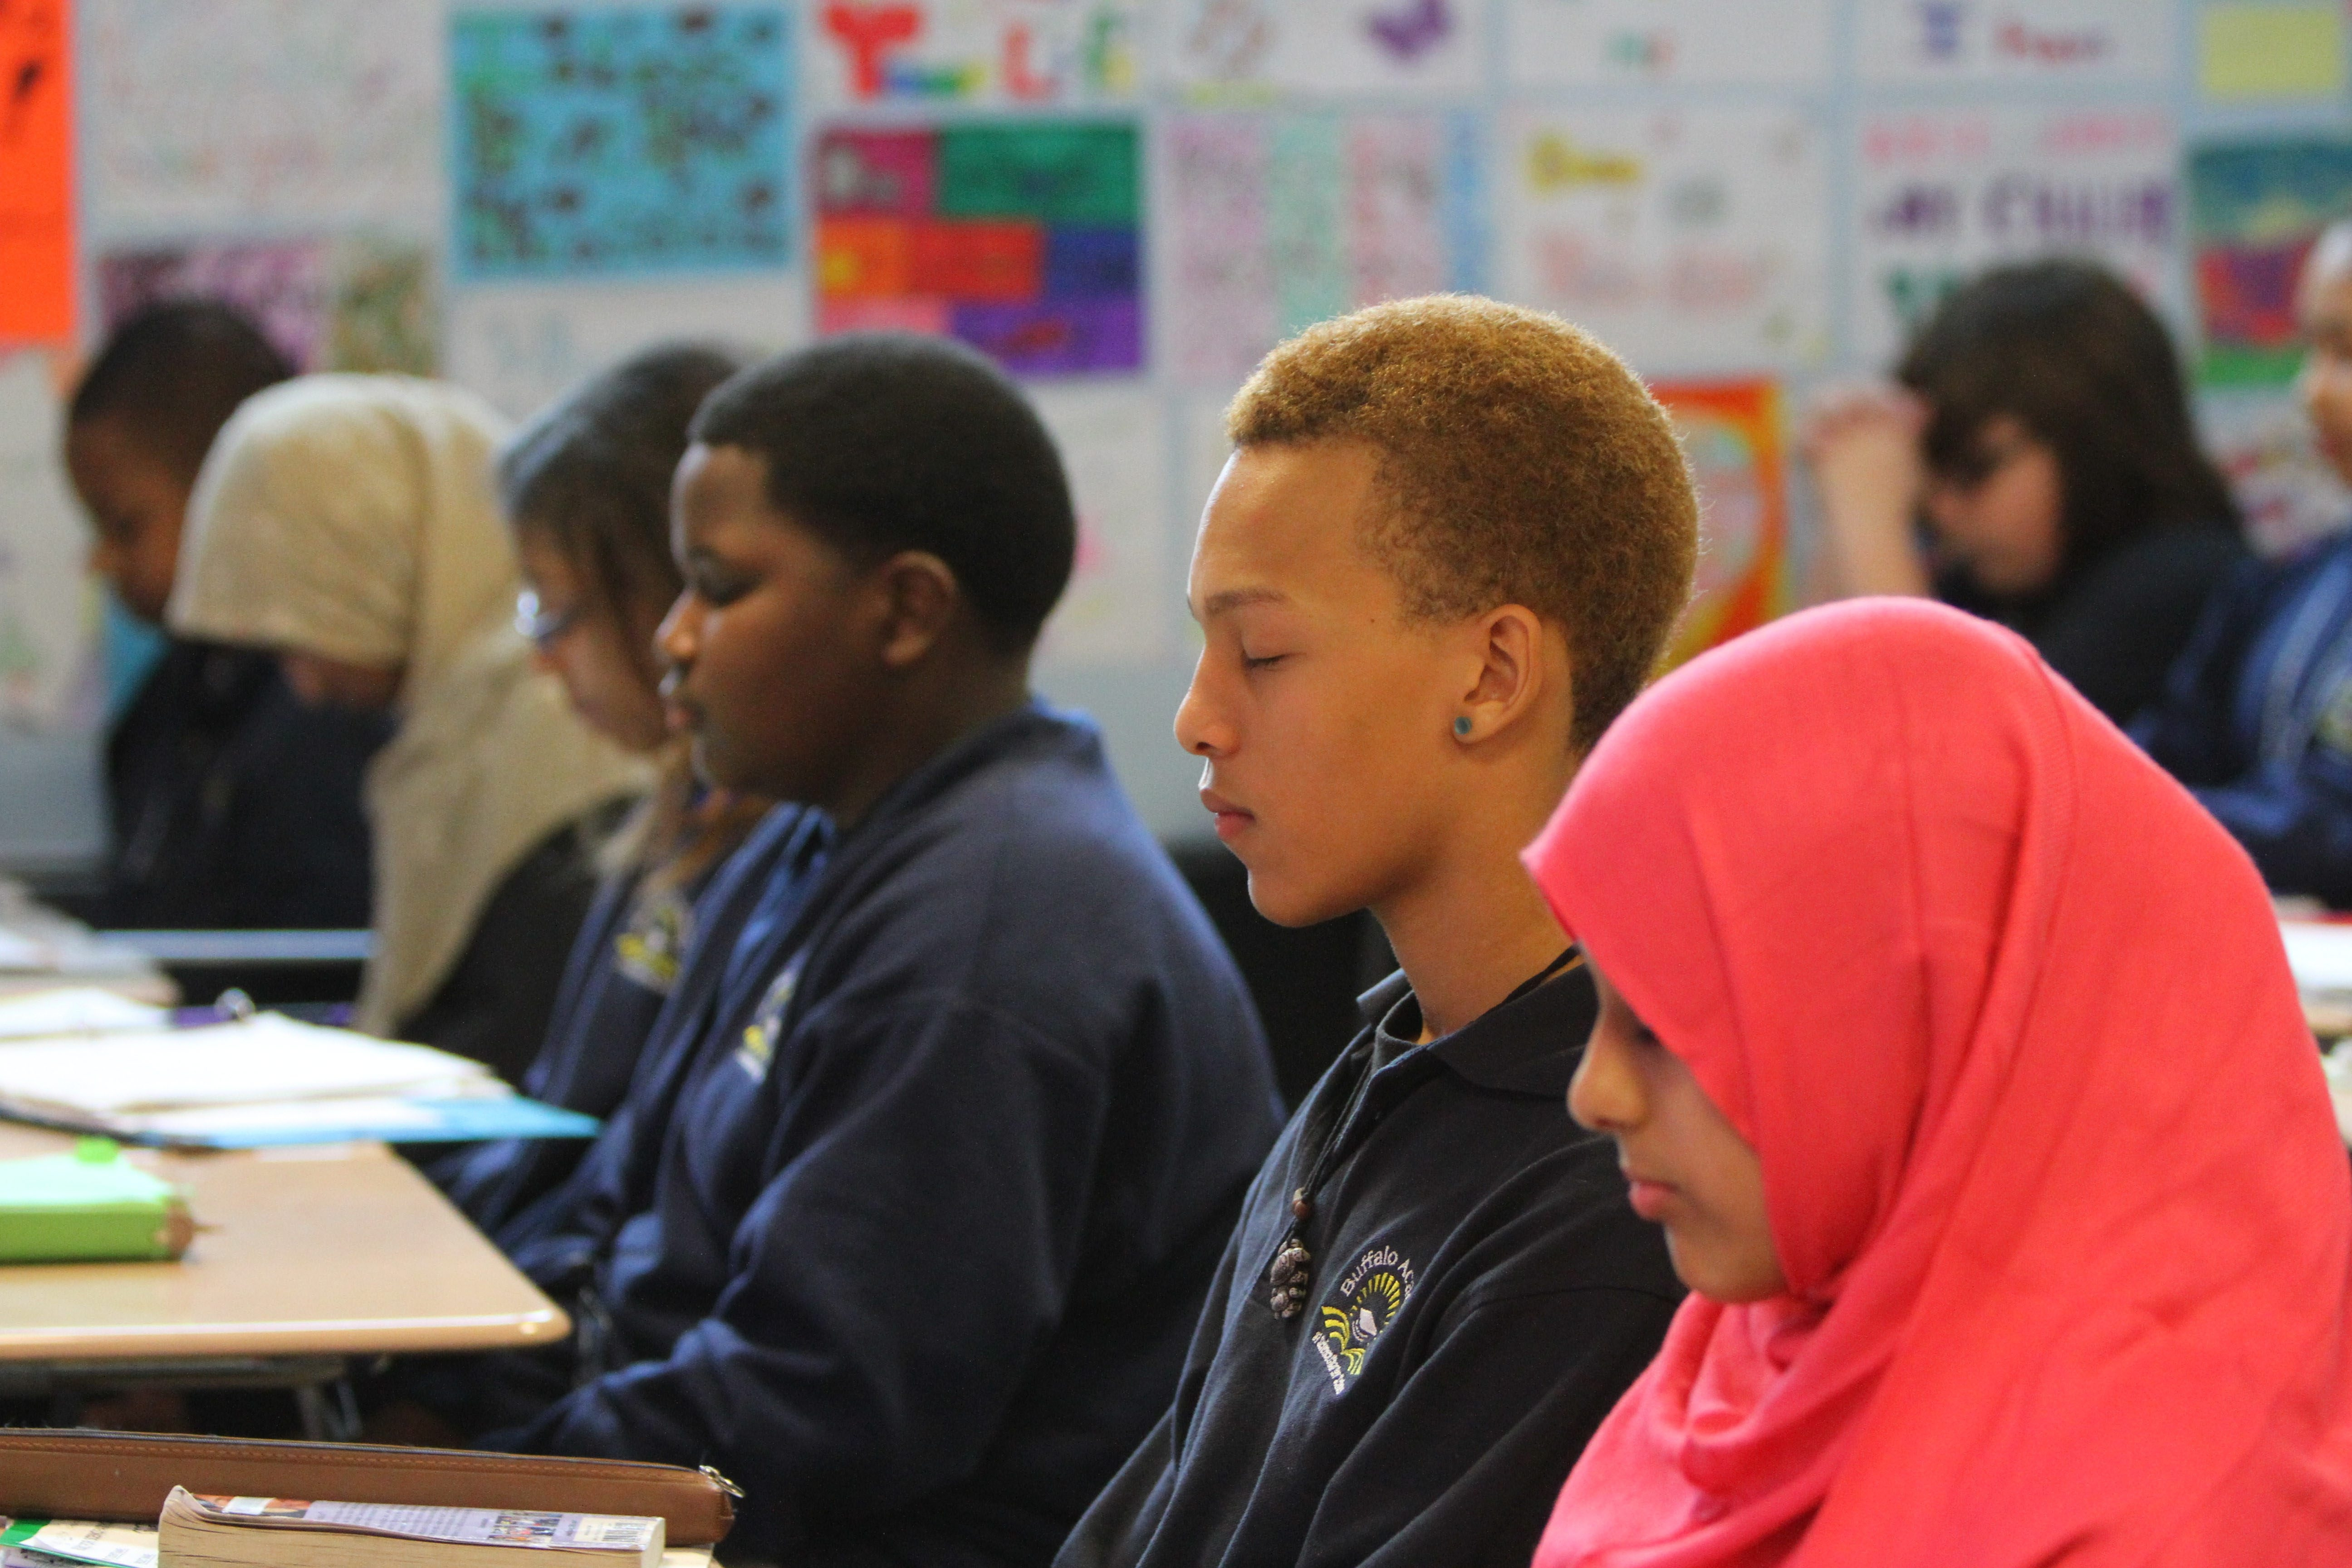 Loren Williamson and his classmates at Buffalo Academy of Science Charter School sit with their eyes closed while breathing deeply and silently reciting an affirmation as part of the MindUP Program, which teaches meditation techniques to boost confidence and optimism.